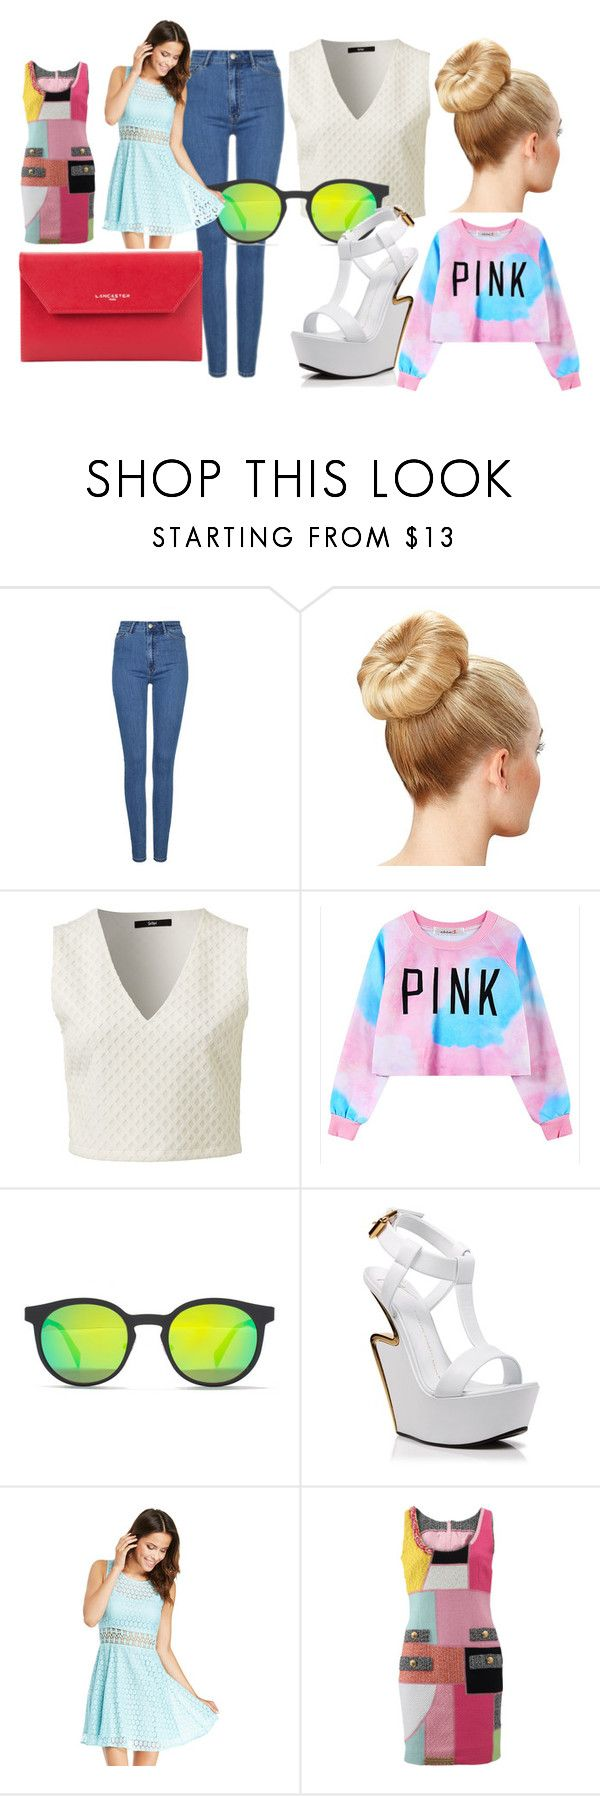 """jn"" by rismasansella on Polyvore featuring Chicnova Fashion, Italia Independent, Giuseppe Zanotti, DailyLook, Moschino, Lancaster, women's clothing, women, female and woman"